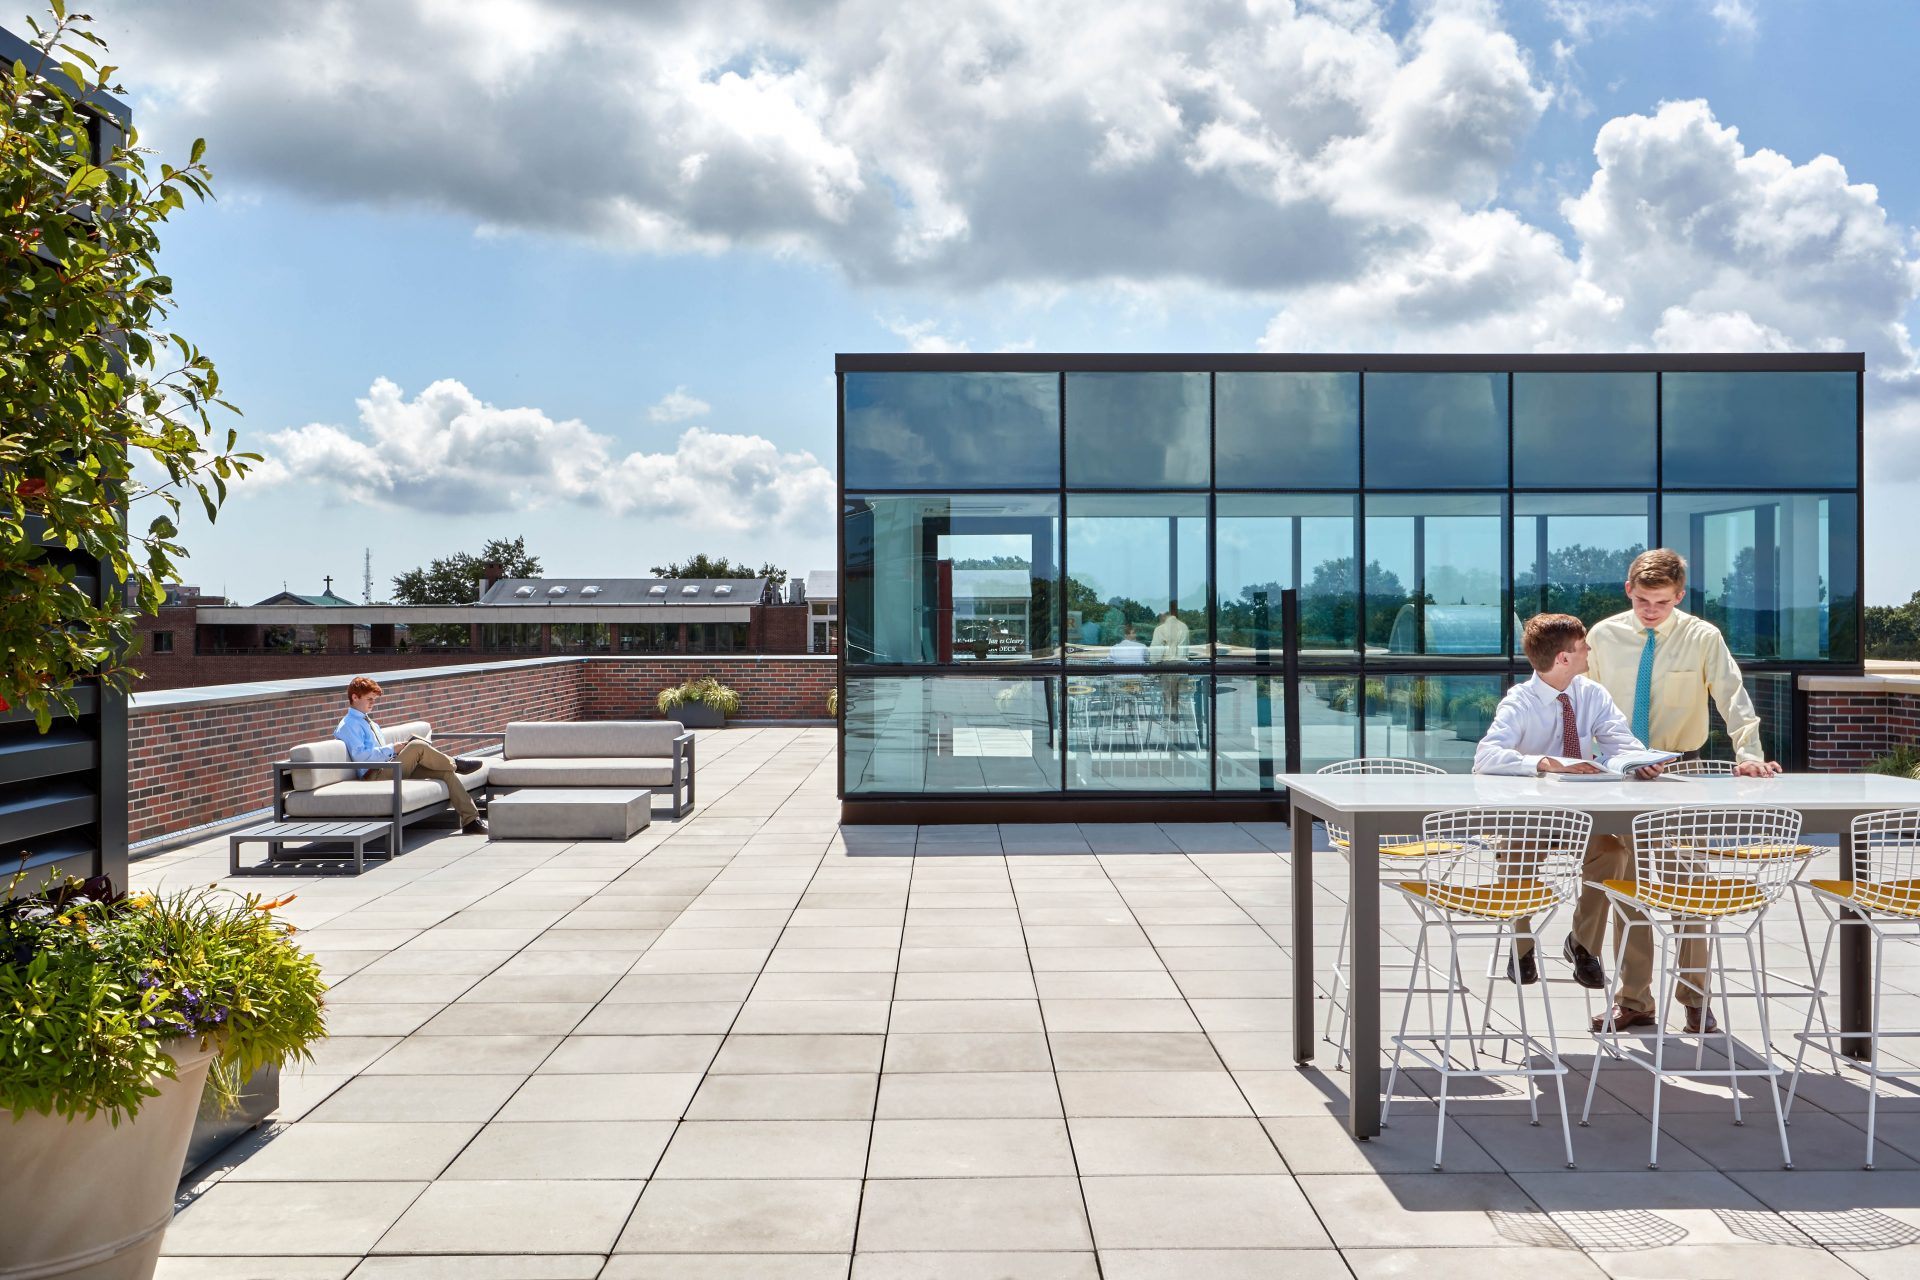 Rooftop event and gathering space atop the new Dolan Family Science Center at Chaminade High School